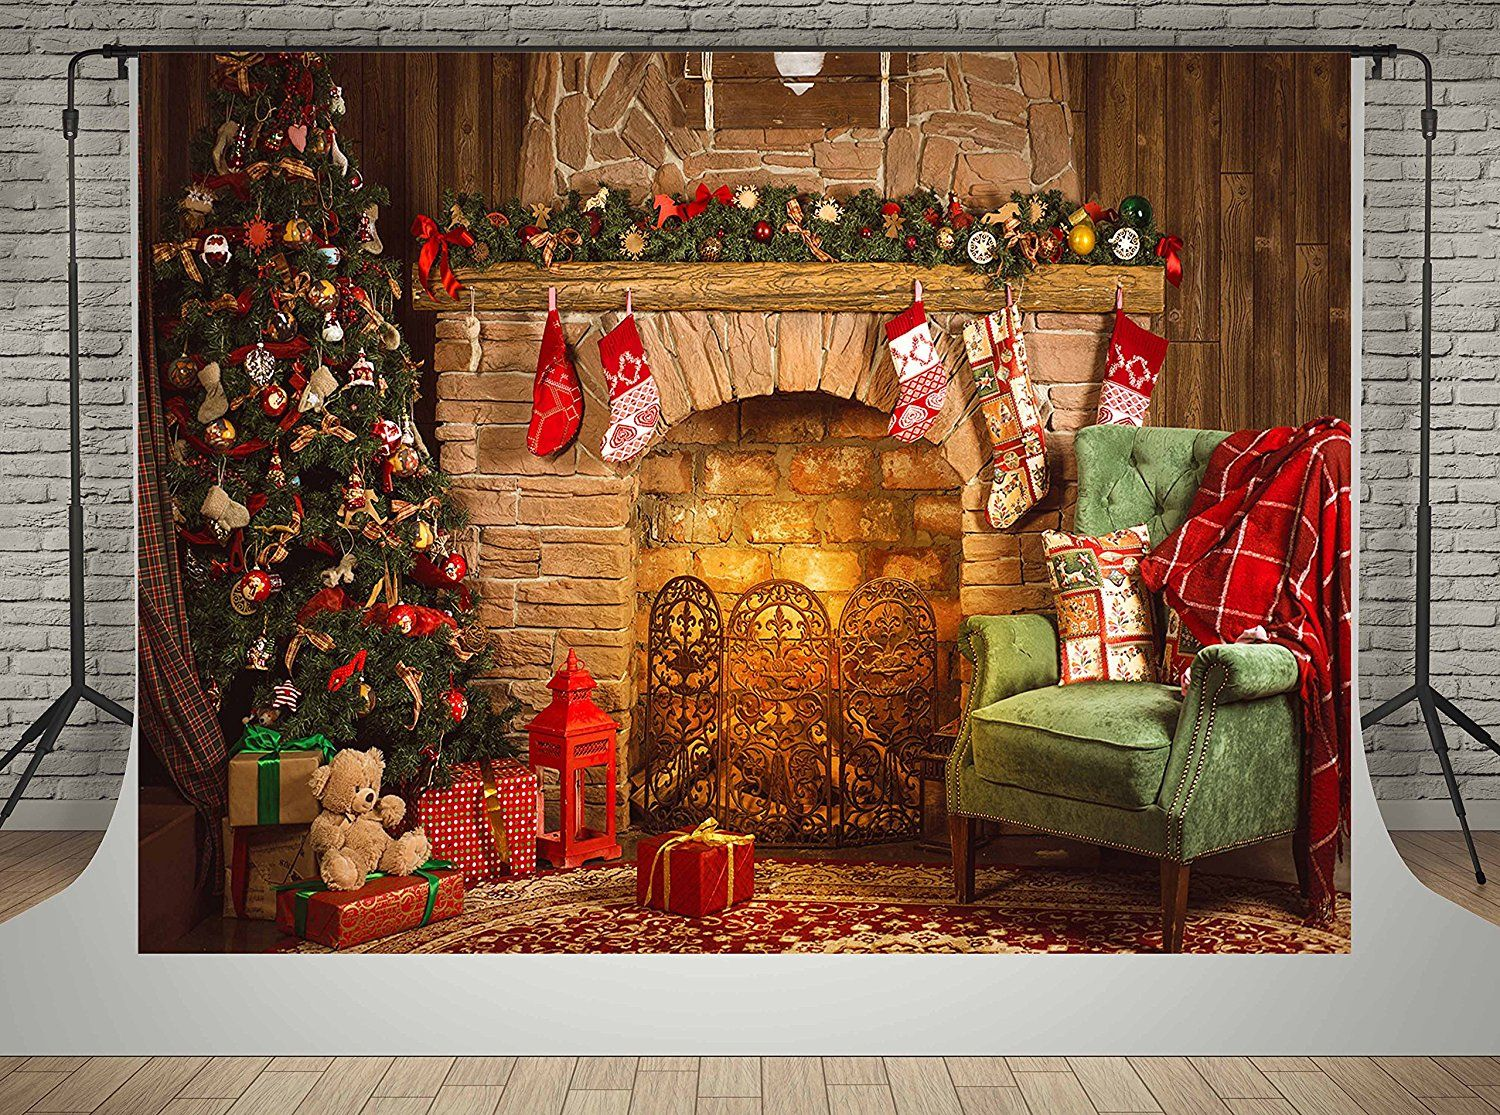 Amazon Com Microfiber Material Backdrops For Photographer Brick Fireplace Background Nig Christmas Backdrops Christmas Tree And Fireplace Christmas Fireplace